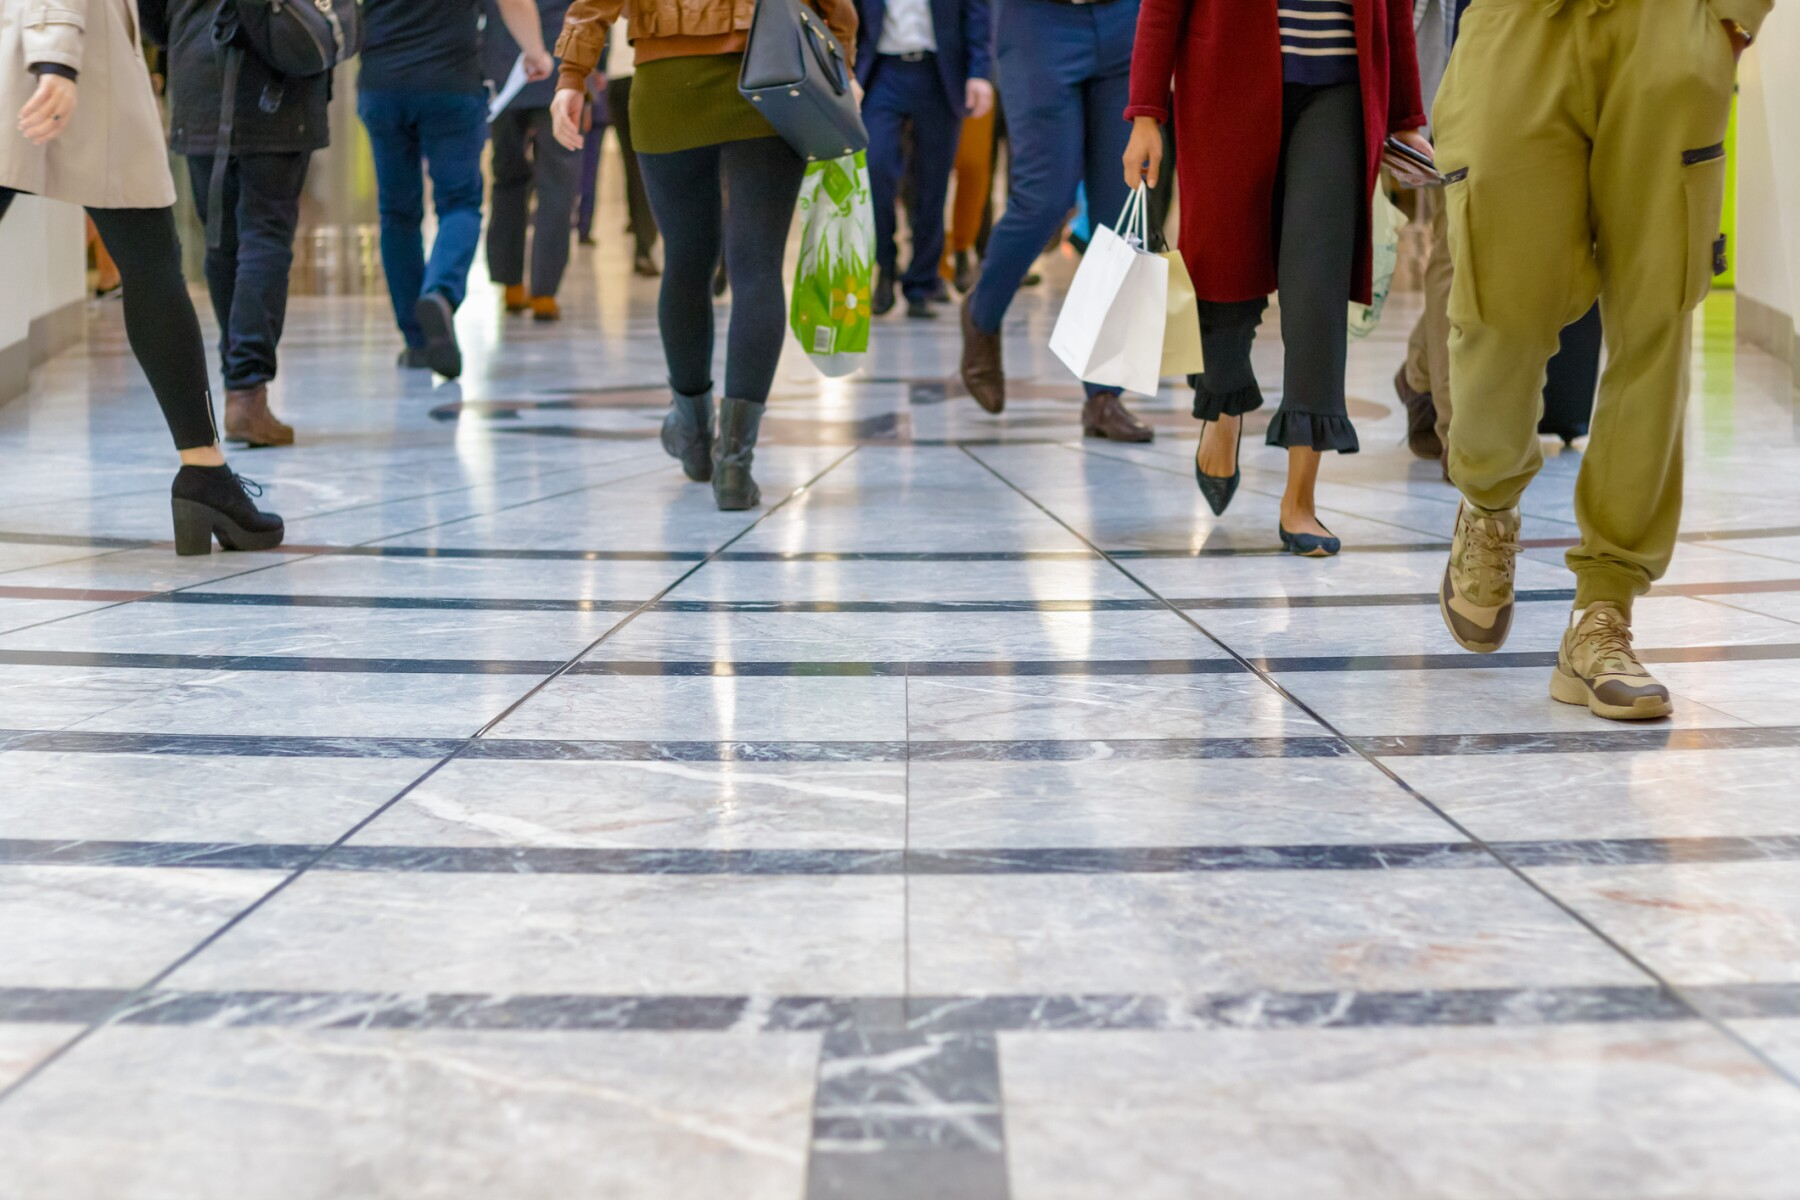 A modern floor with legs of a crowd walking in the background